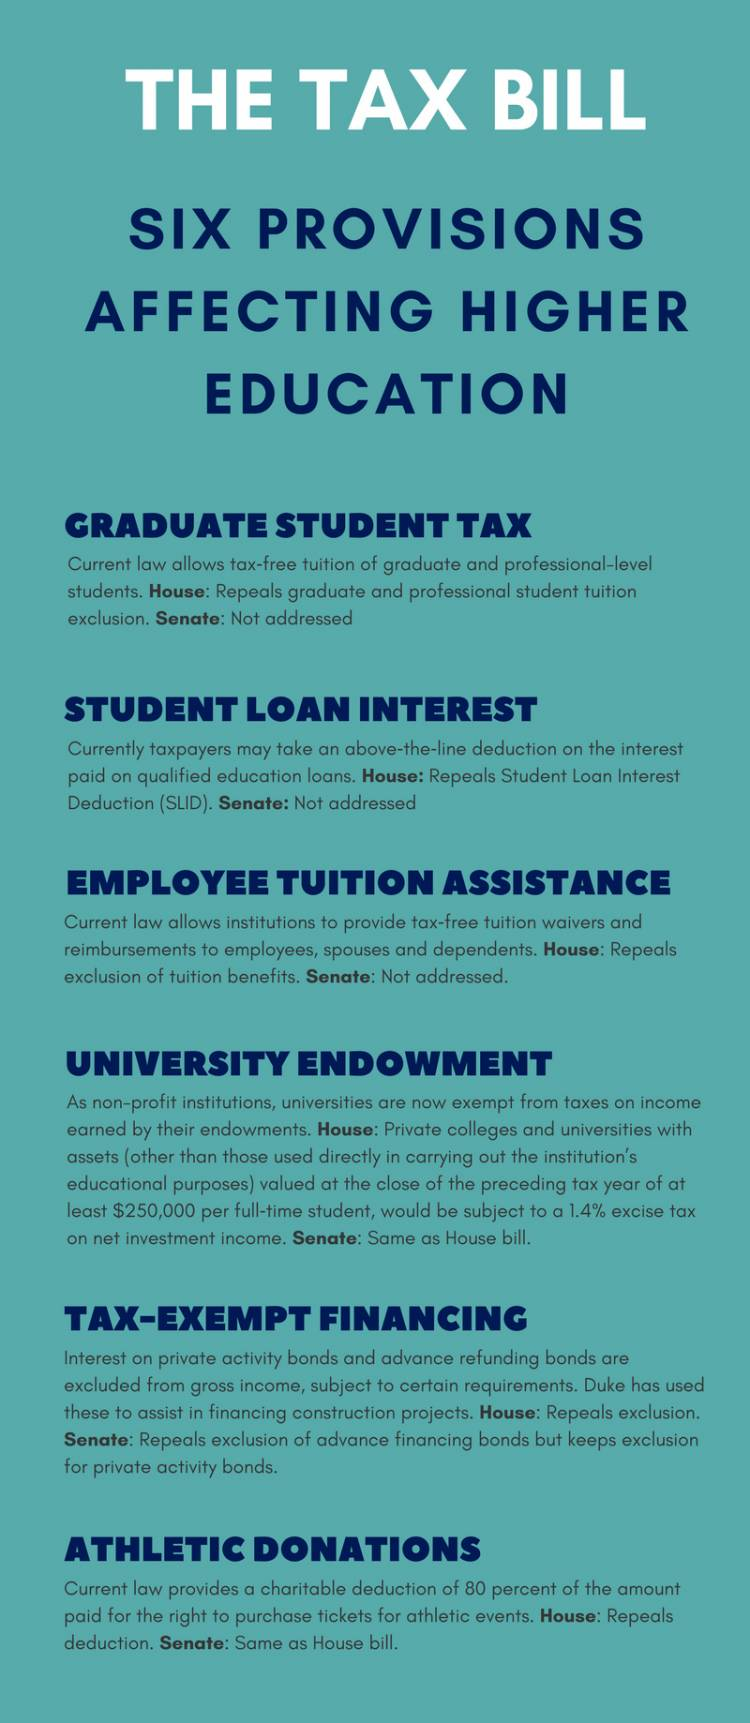 6 provisions in the tax bill affecting higher education